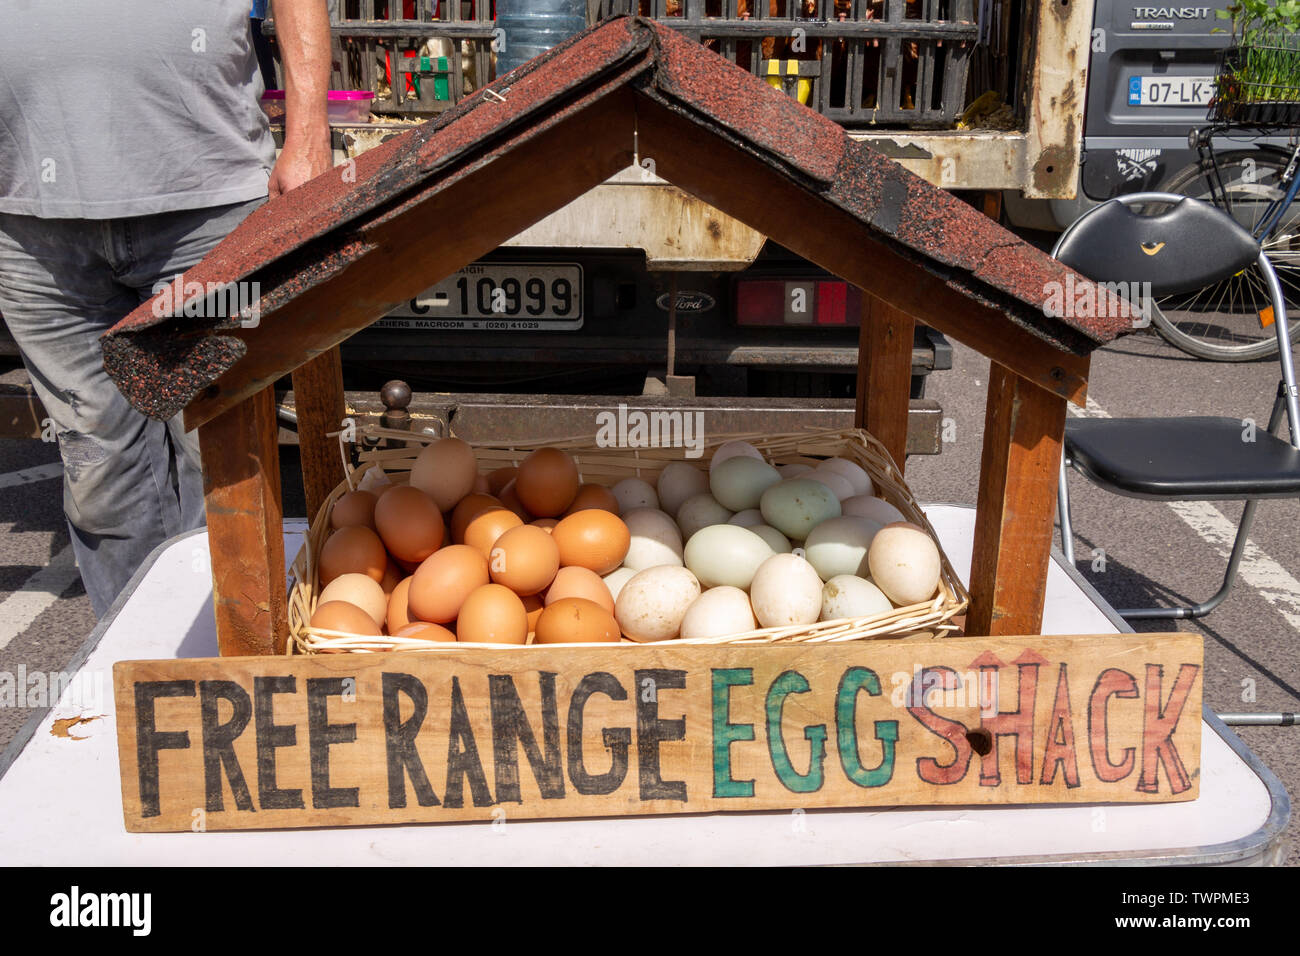 free-range-eggs-for-sale-at-an-open-air-market-TWPME3.jpg